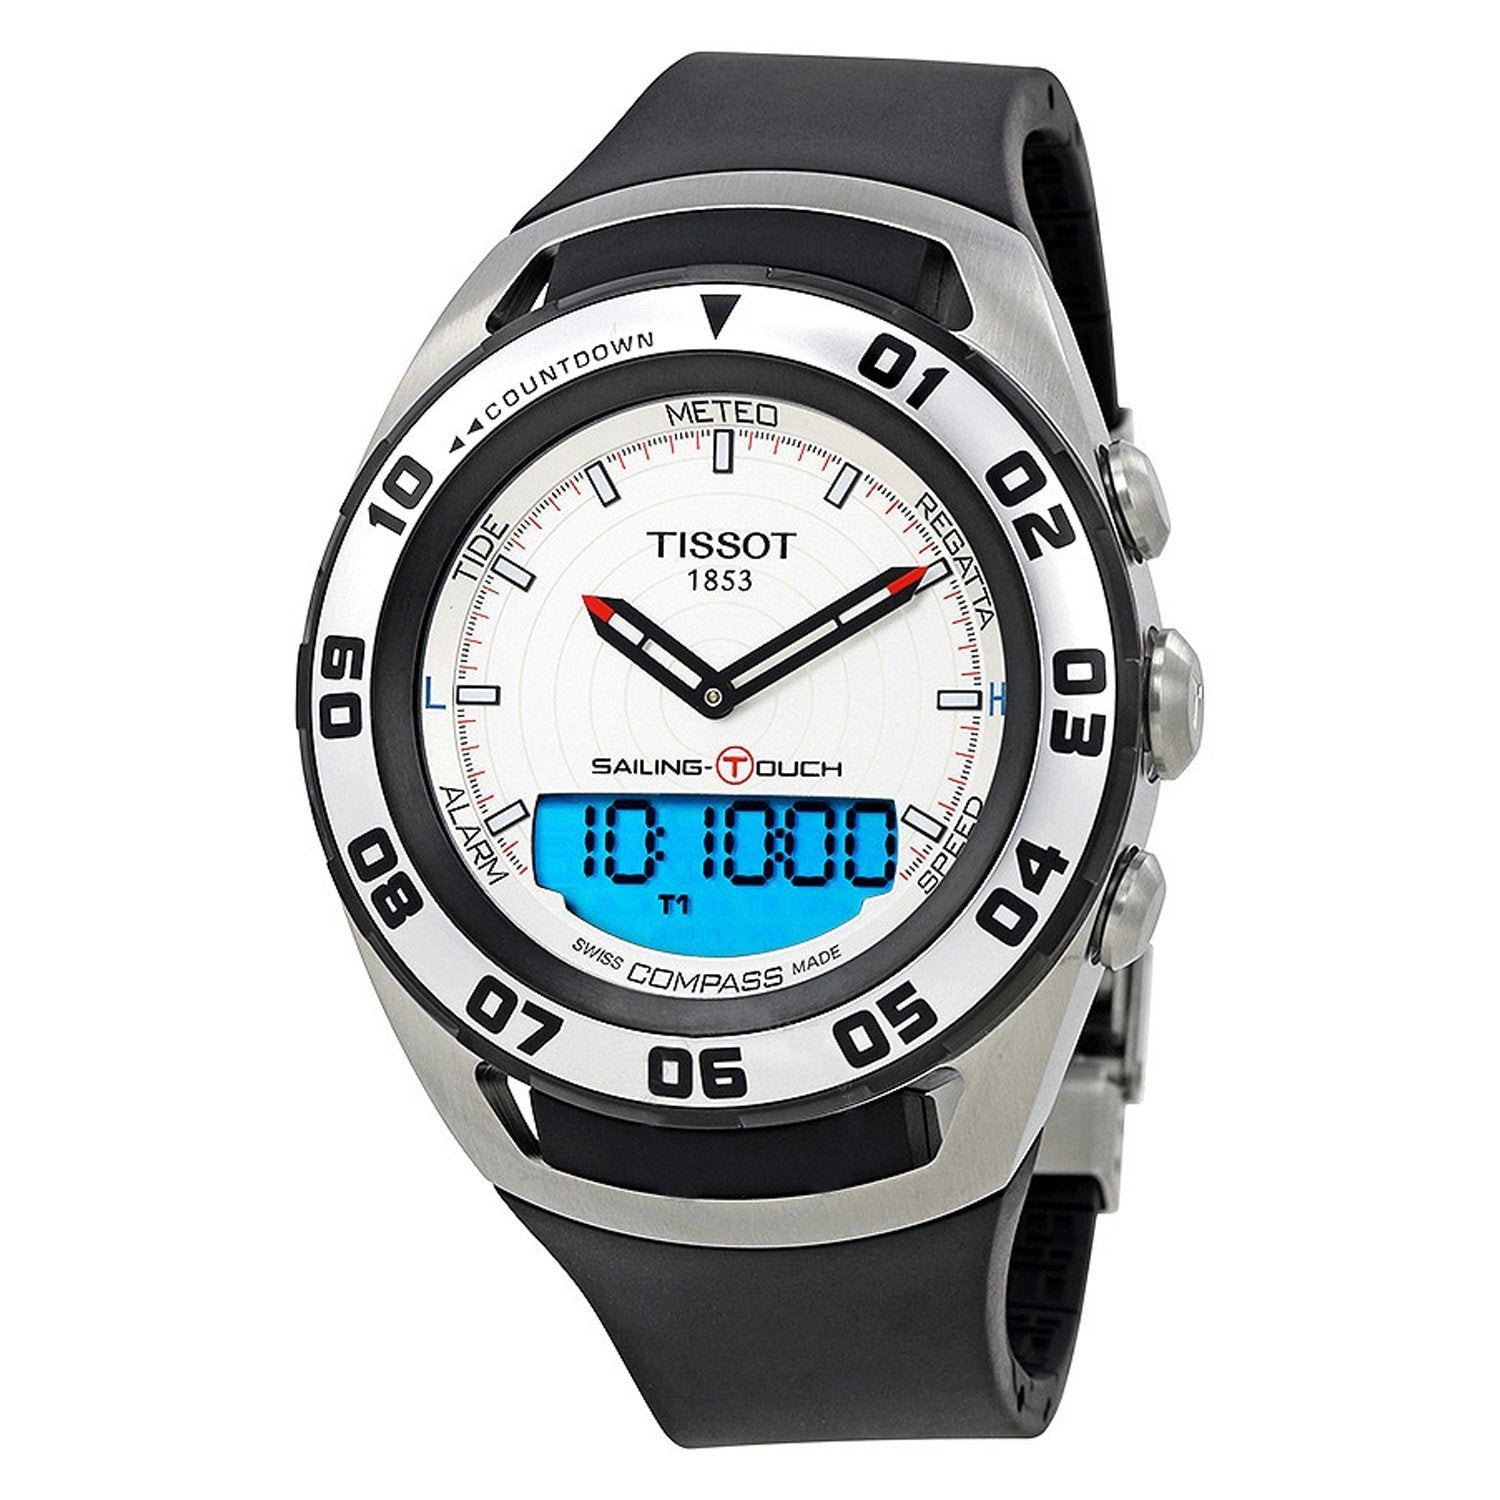 Tissot Sailing Touch Chronograph White - Watches & Crystals